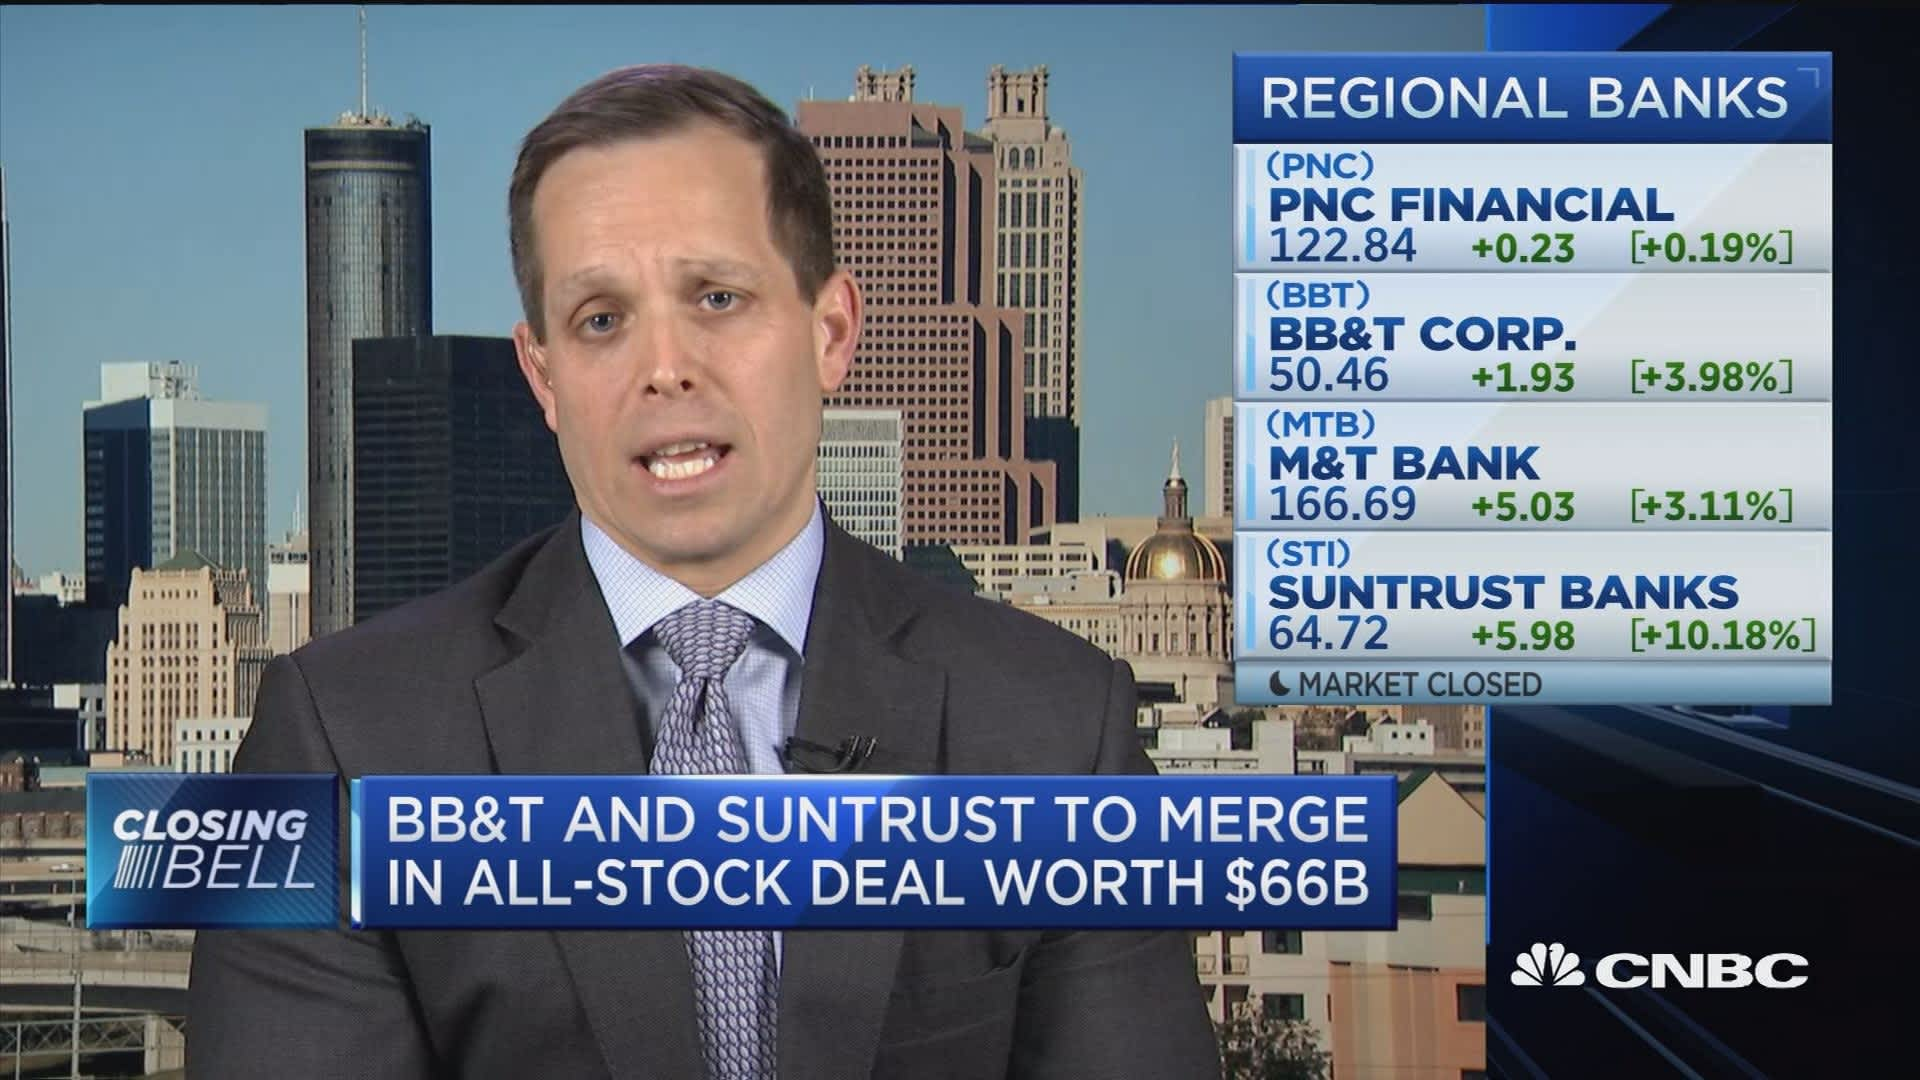 BB&T and SunTrust need to be competitive, but not on same scale as Citi or  JP Morgan, says Stephen Scouten